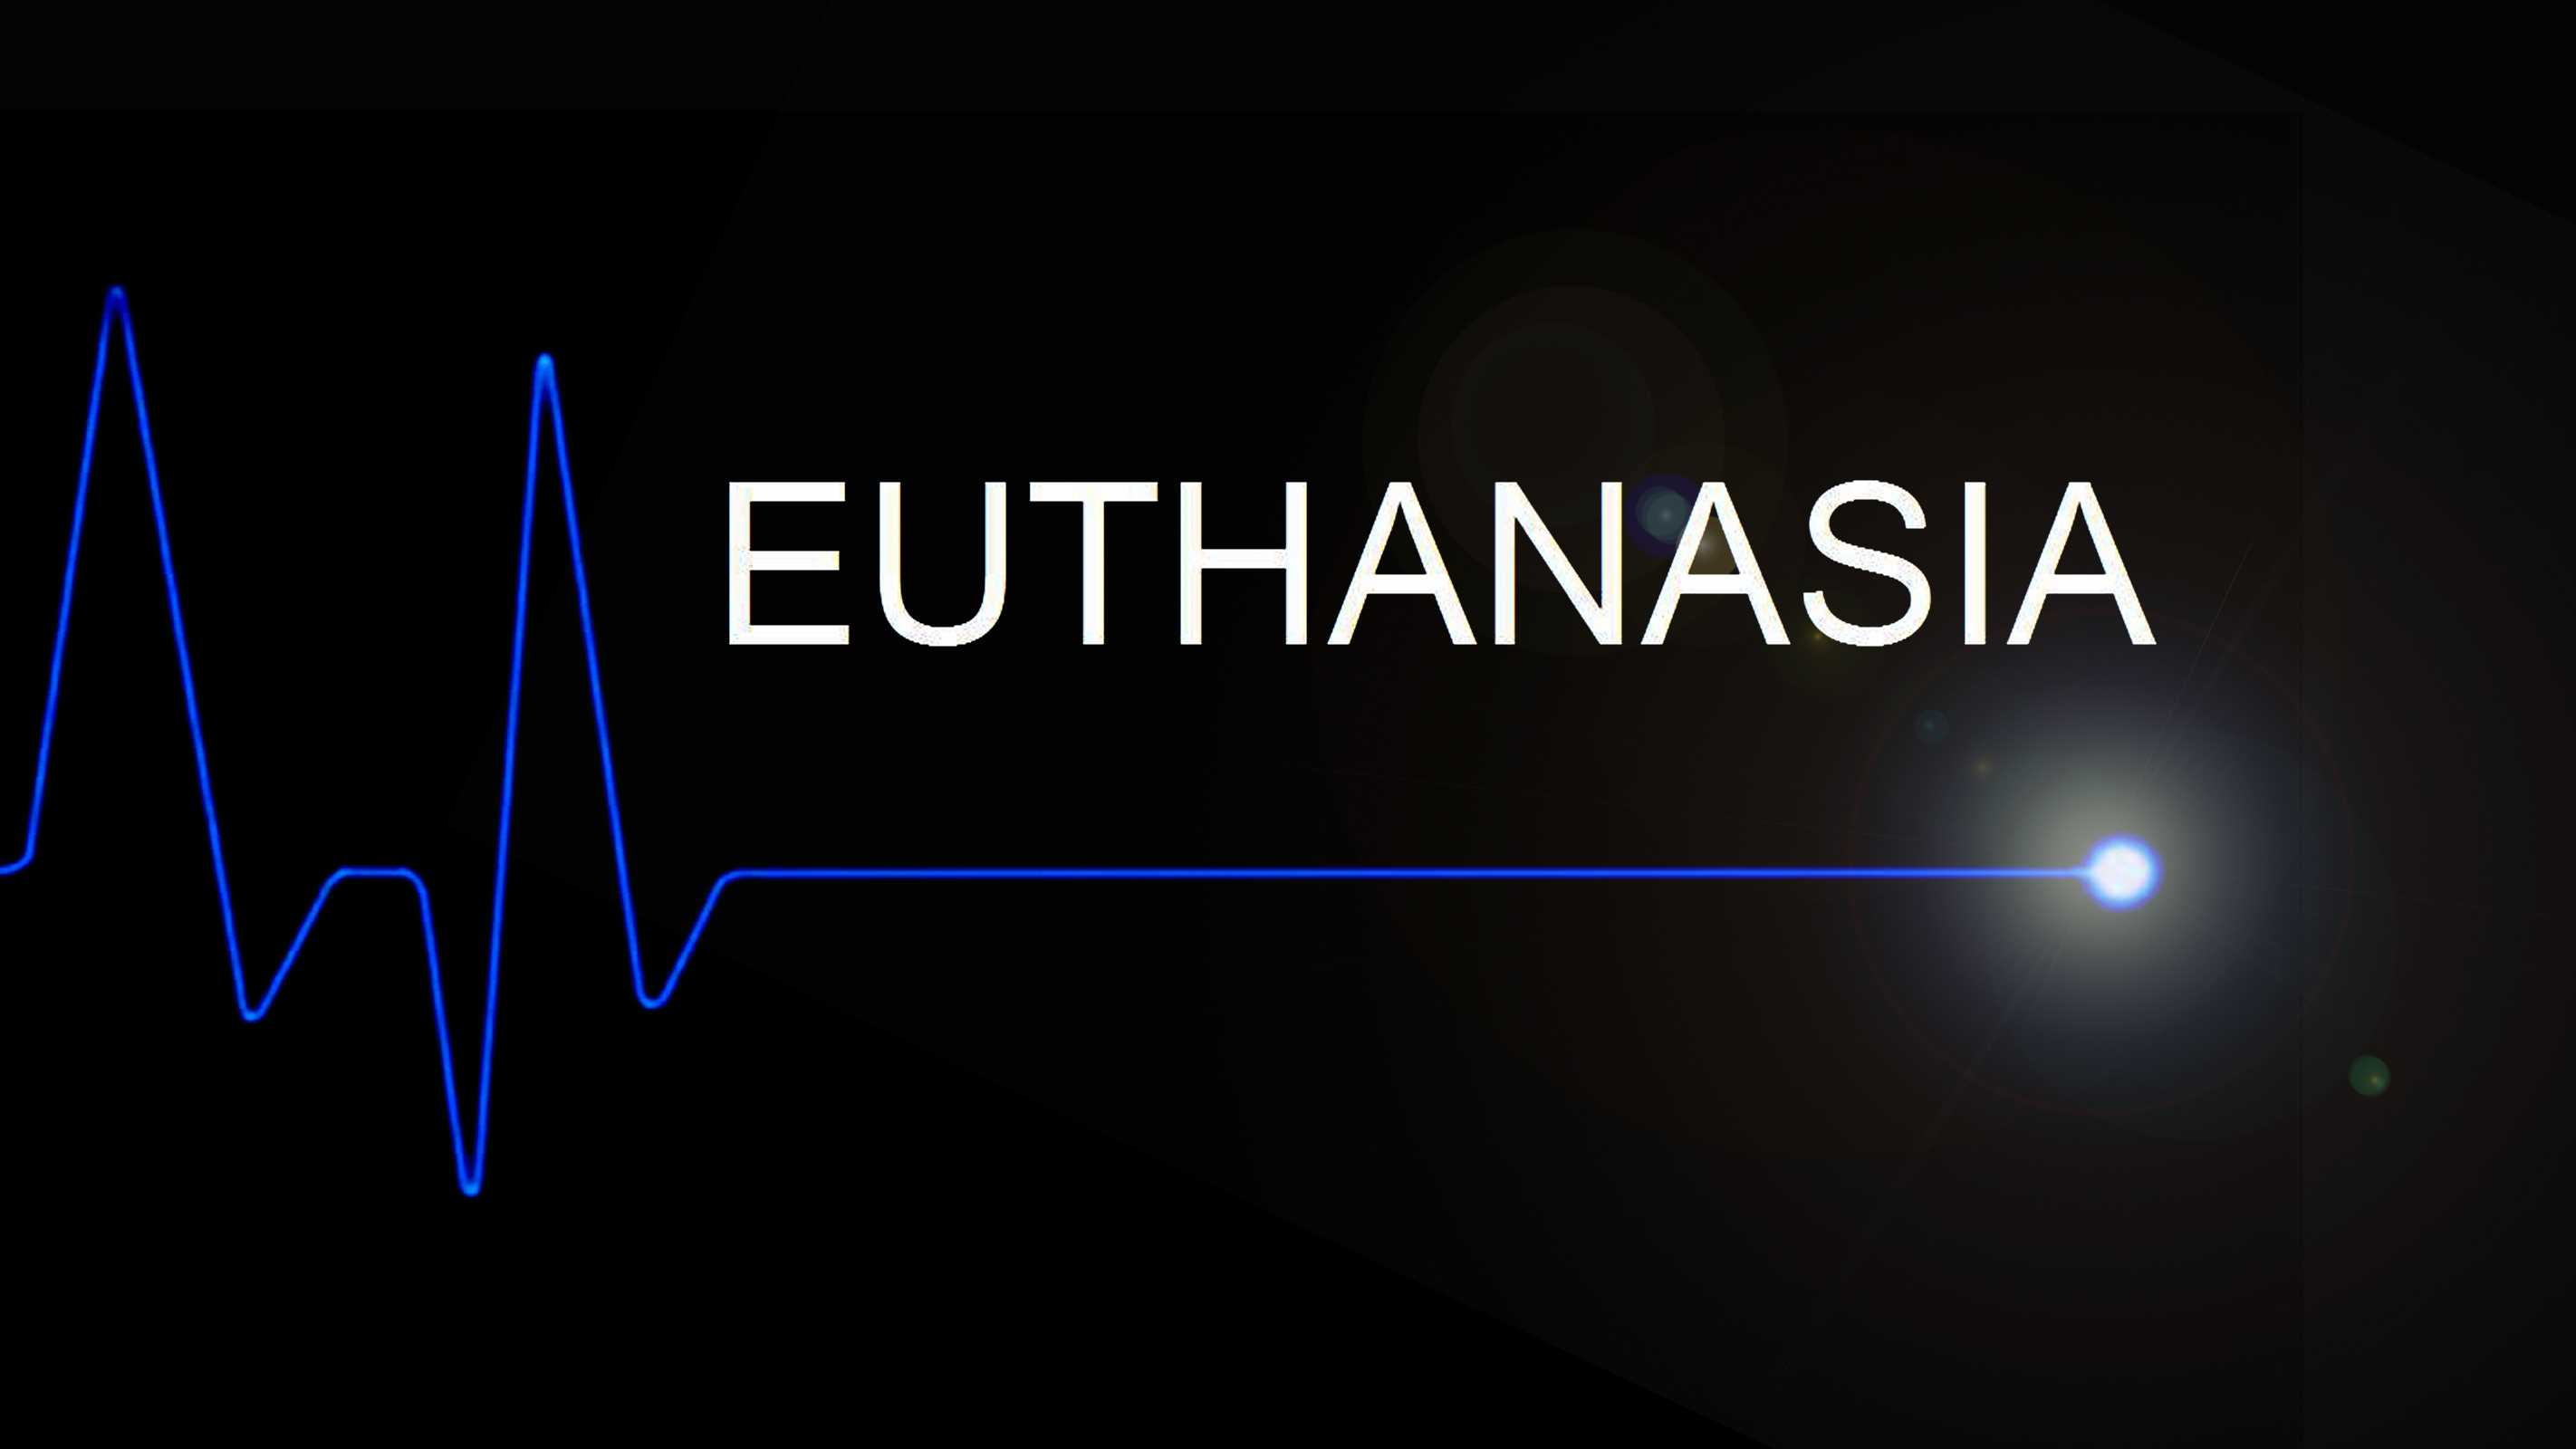 Should euthanasia be legalized in australia essay